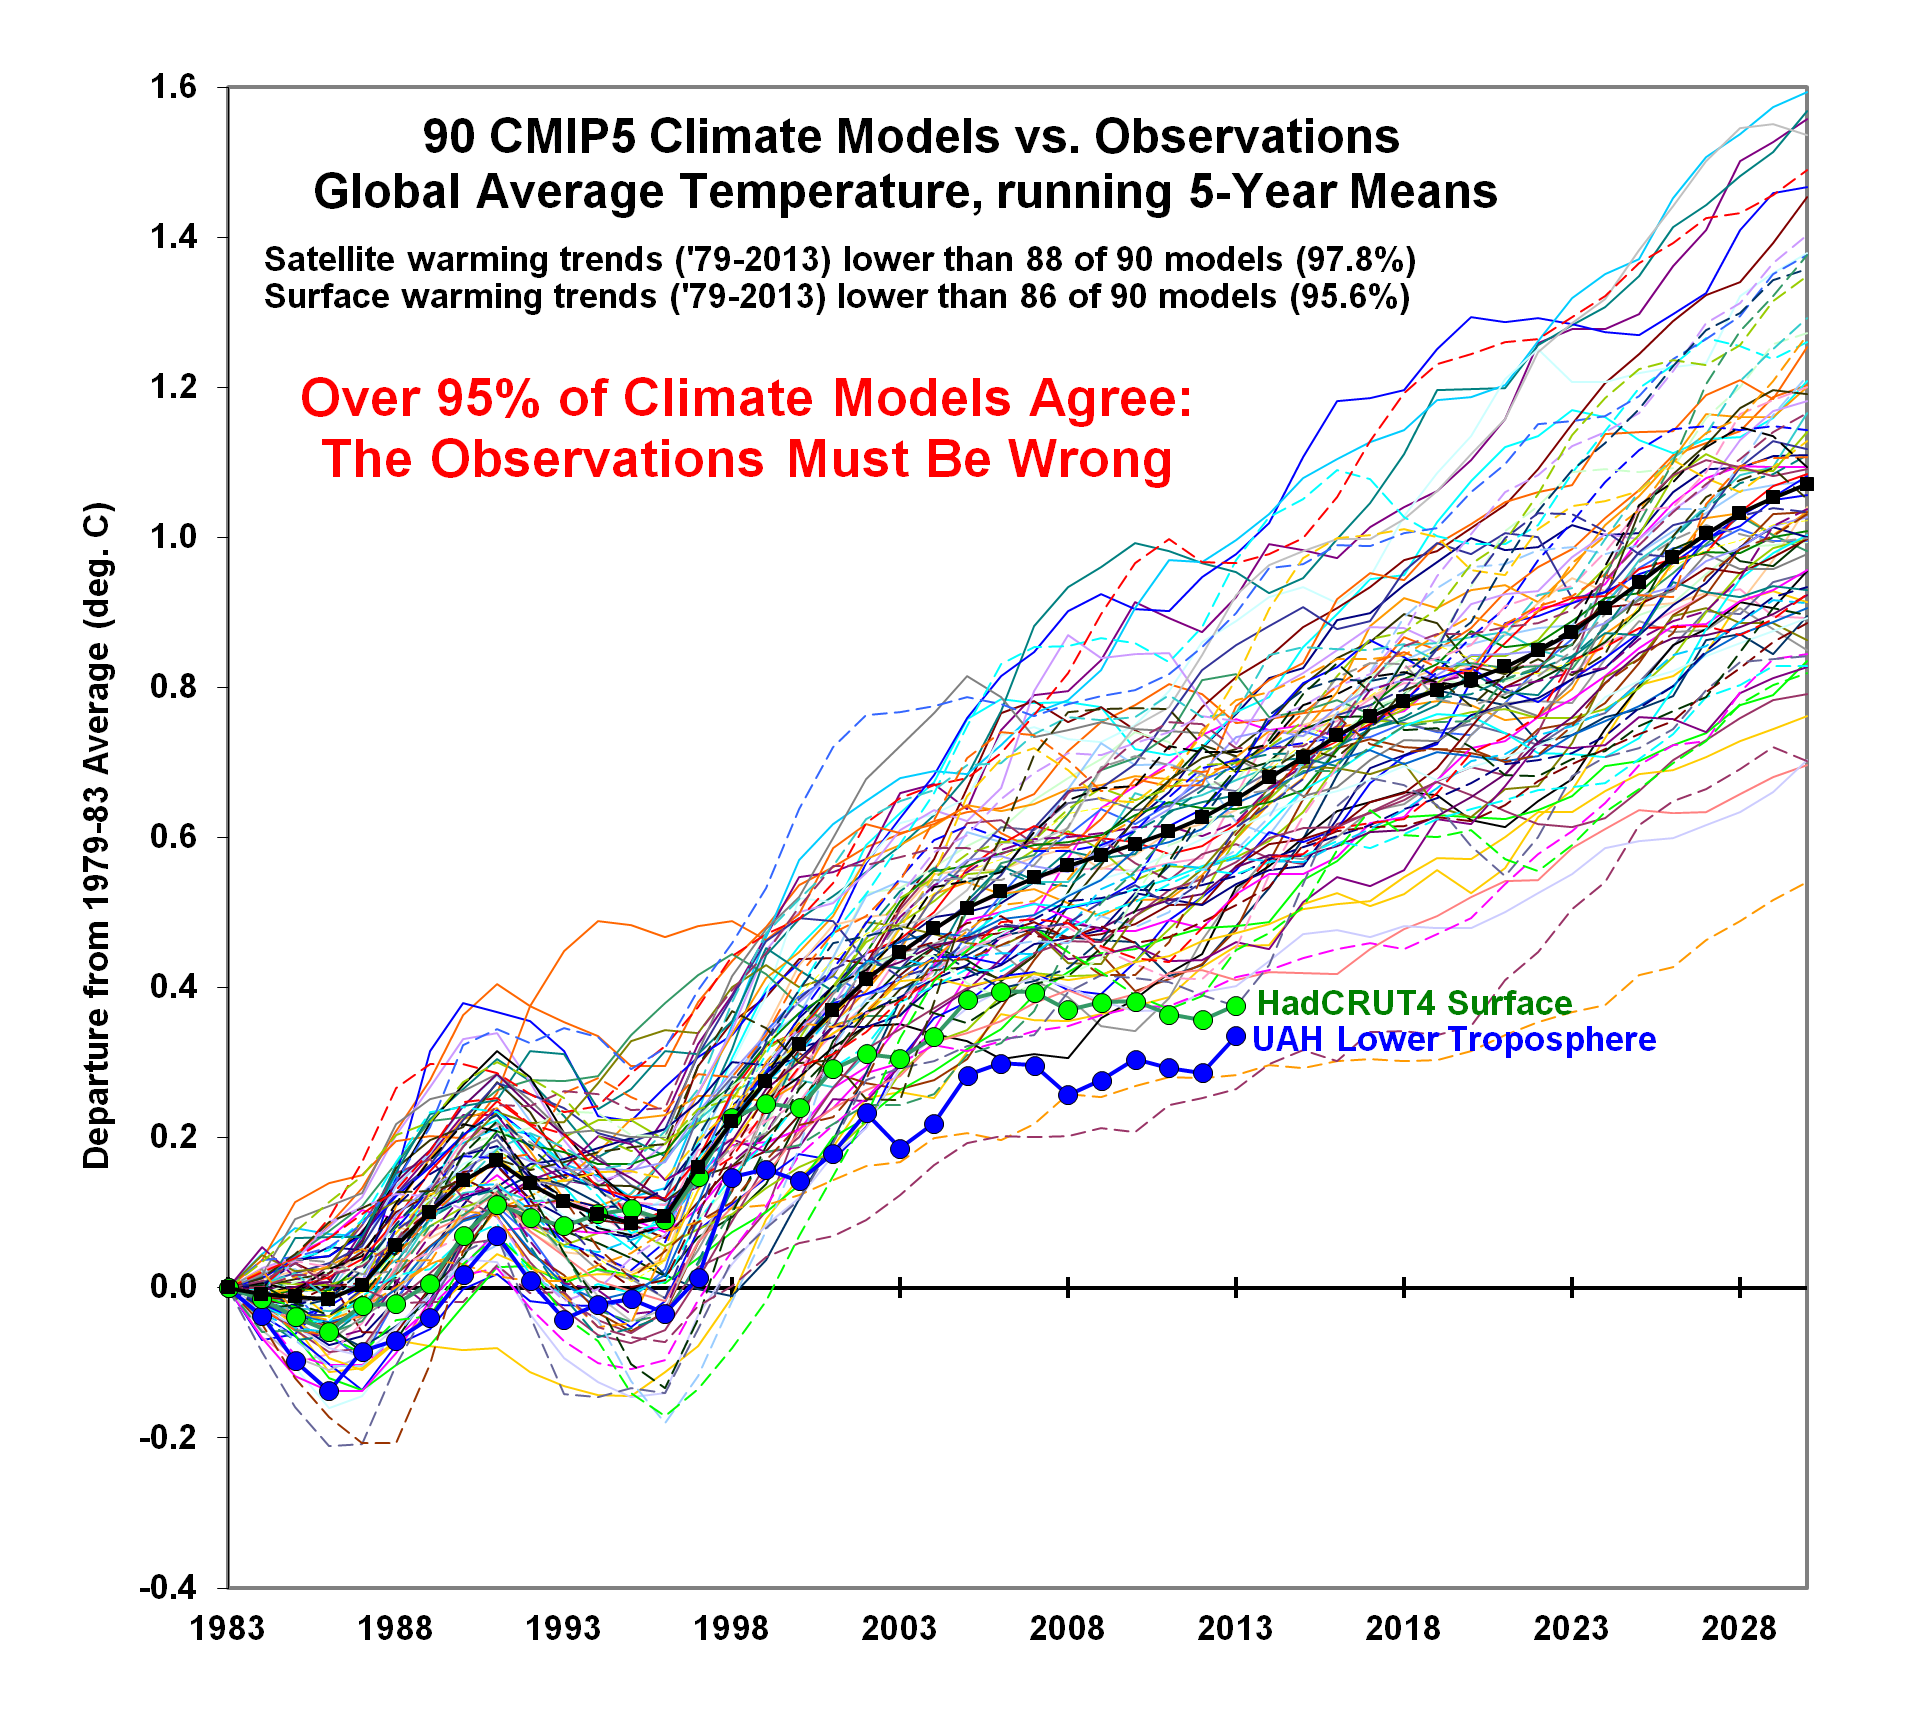 95% of Climate Models Agree: The Observations Must be Wrong